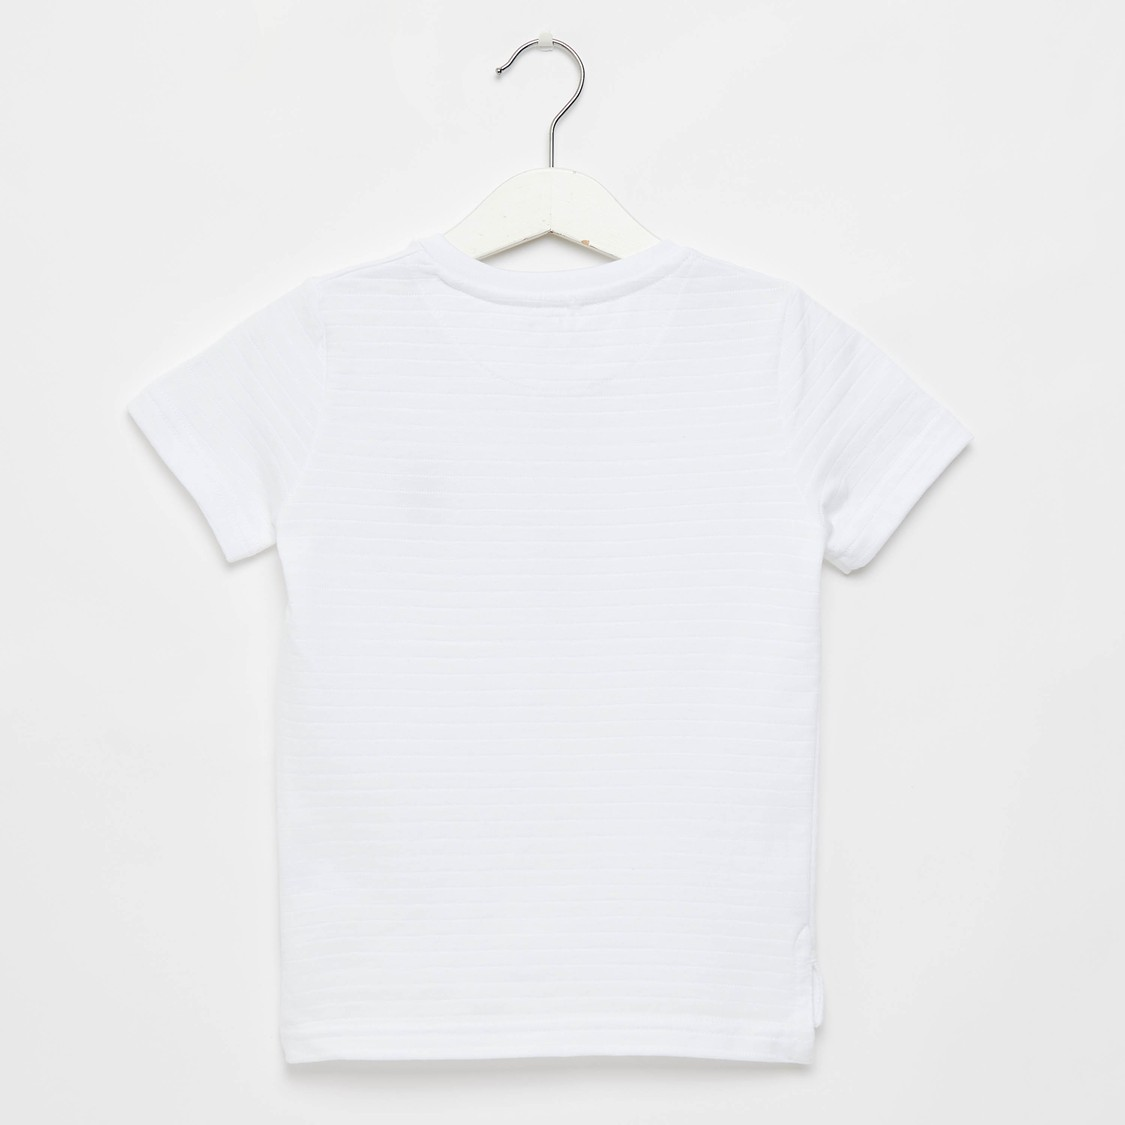 Textured Henley Neck T-shirt with Short Sleeves